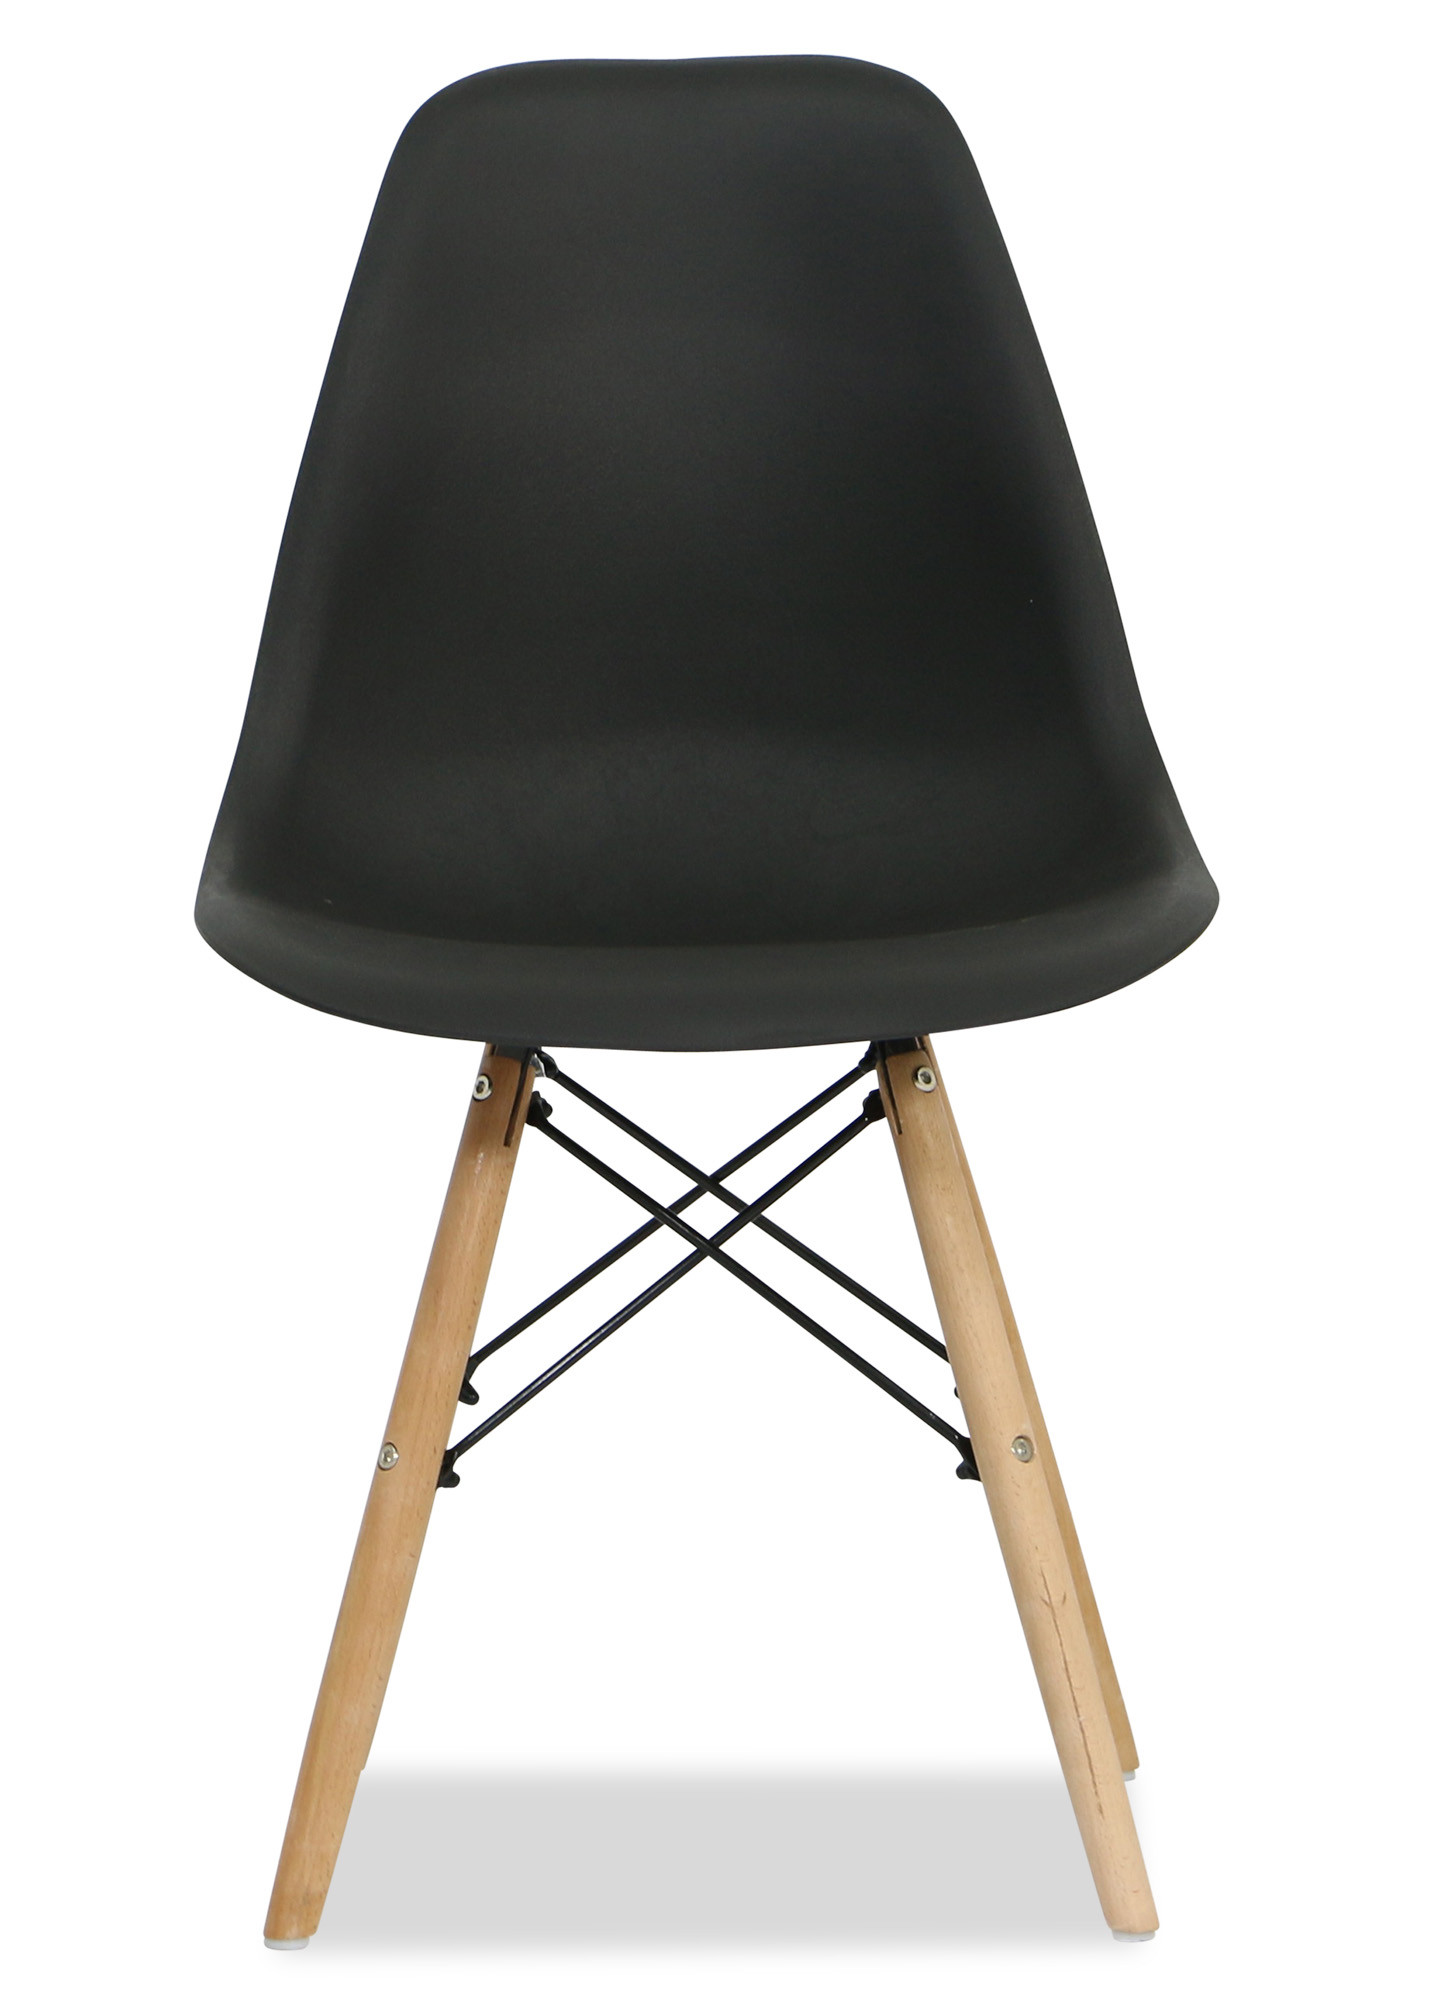 Eames black replica designer chair dining chairs for Designer furniture replica malaysia